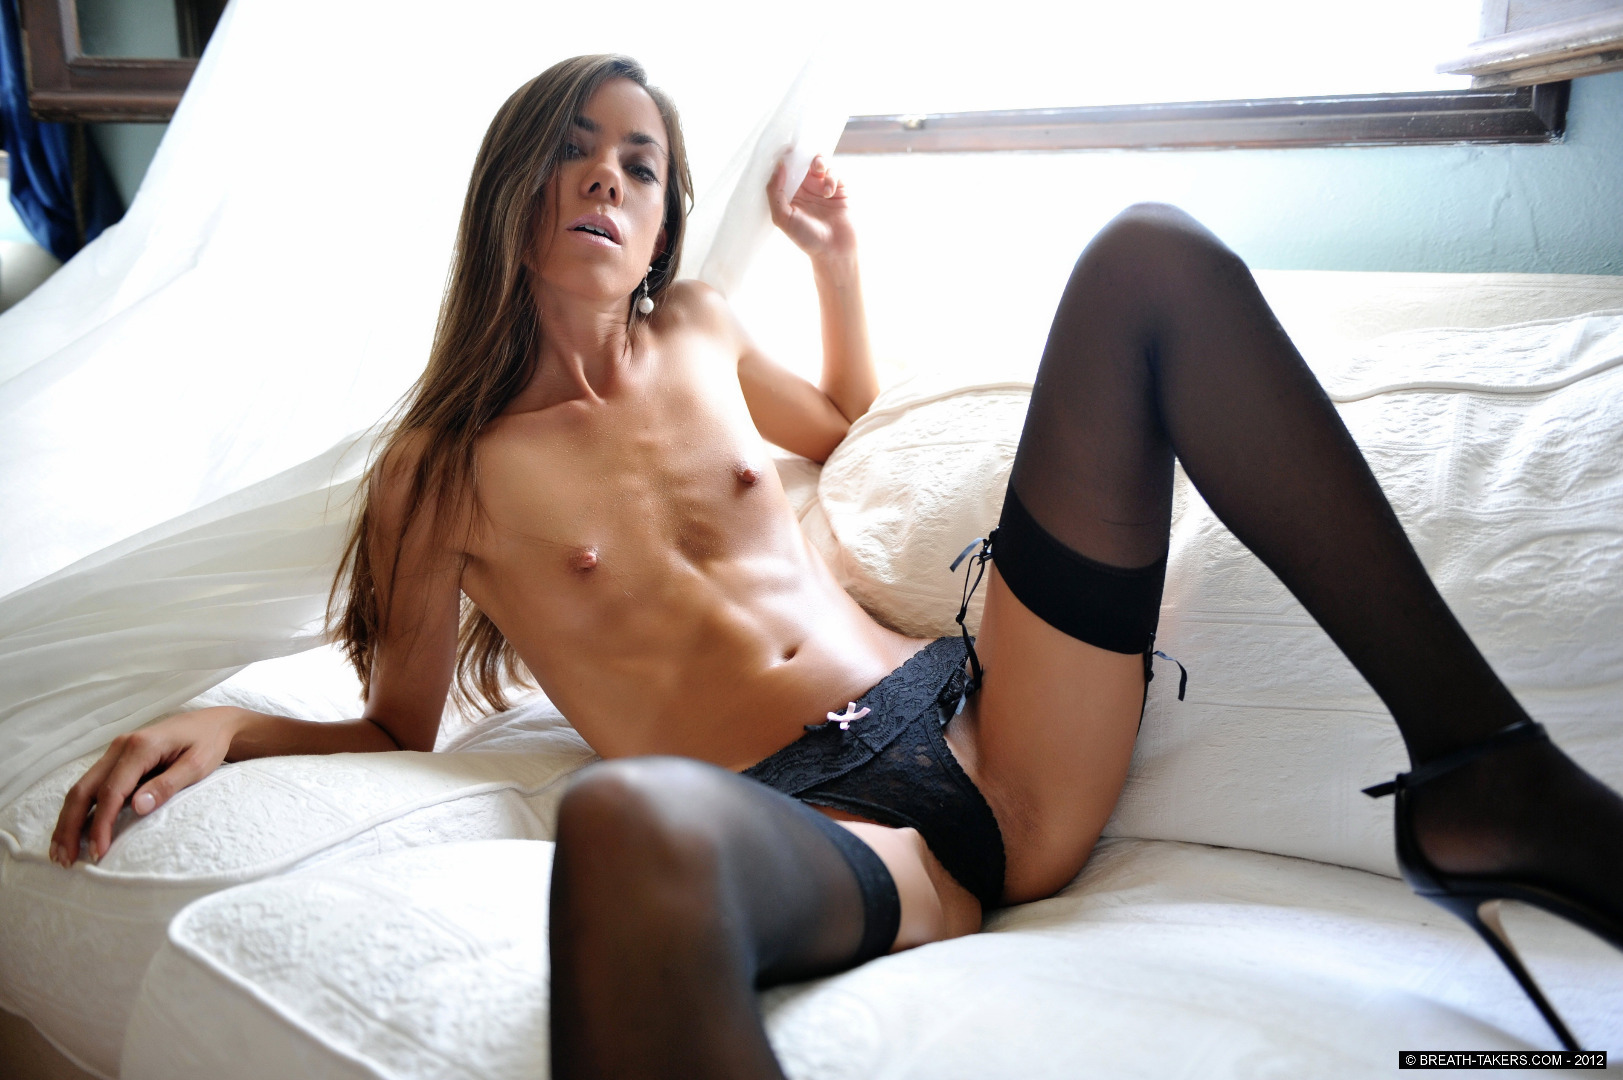 pantyhose handjob free tubes look excite and delight